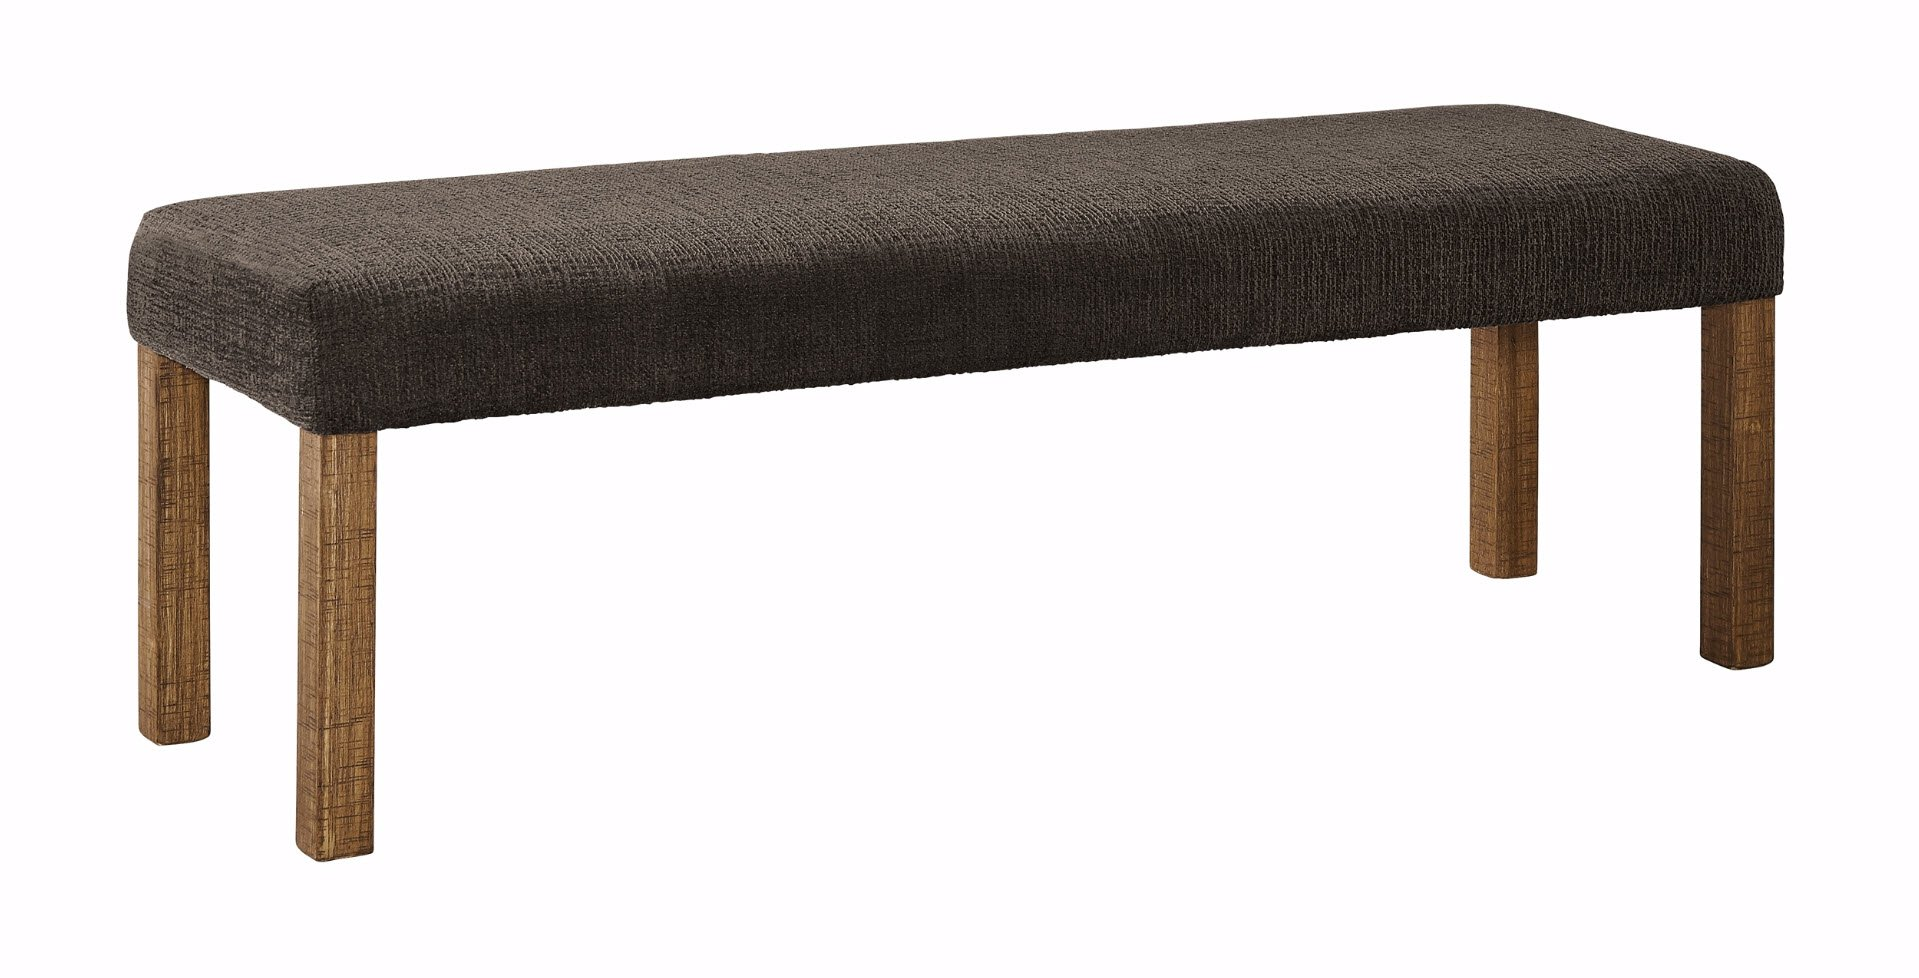 Ashley Furniture Signature Design - Tamilo Dining Room Bench - Rustic Style - Two-tone